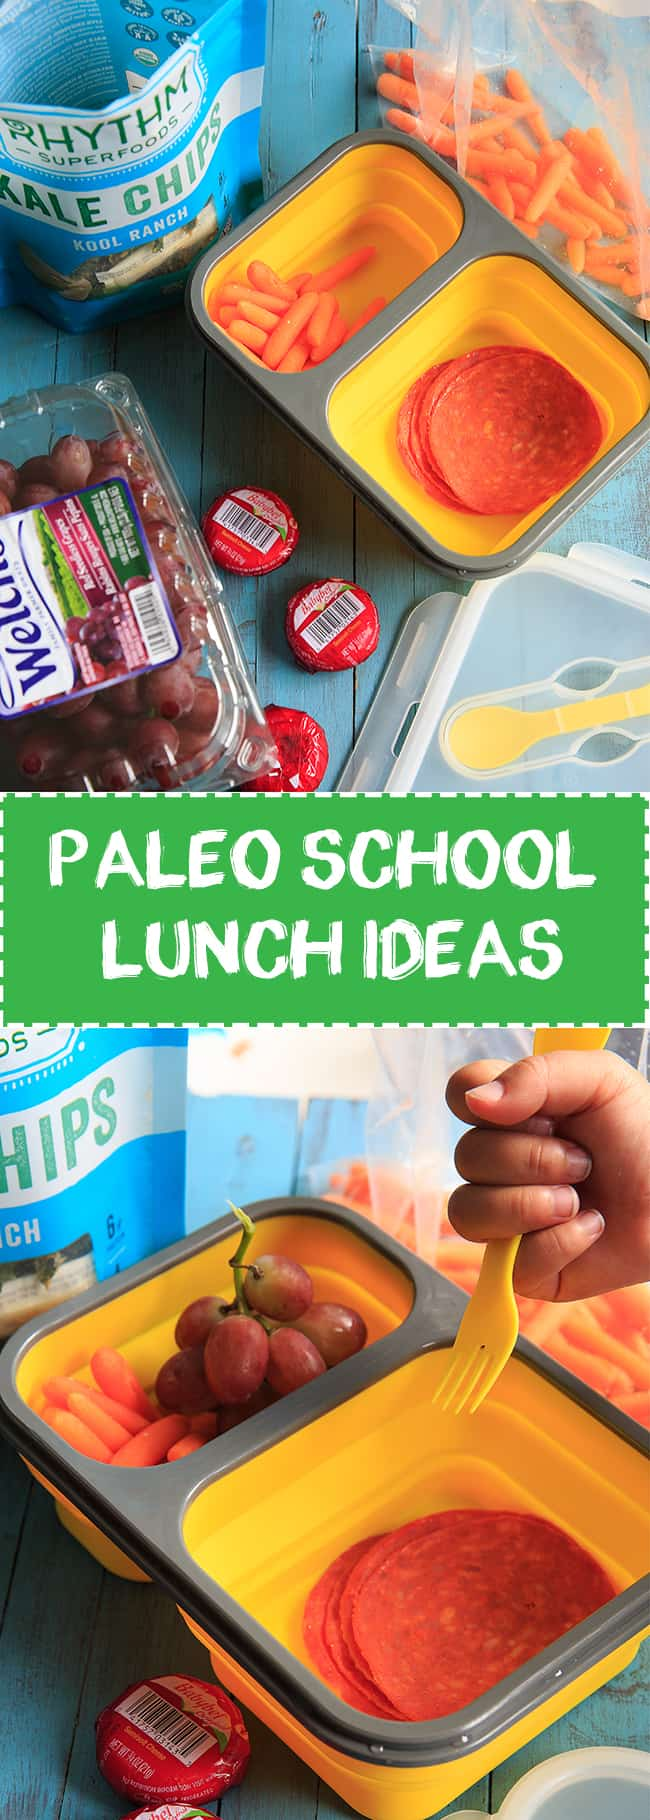 paleo school lunch-9423